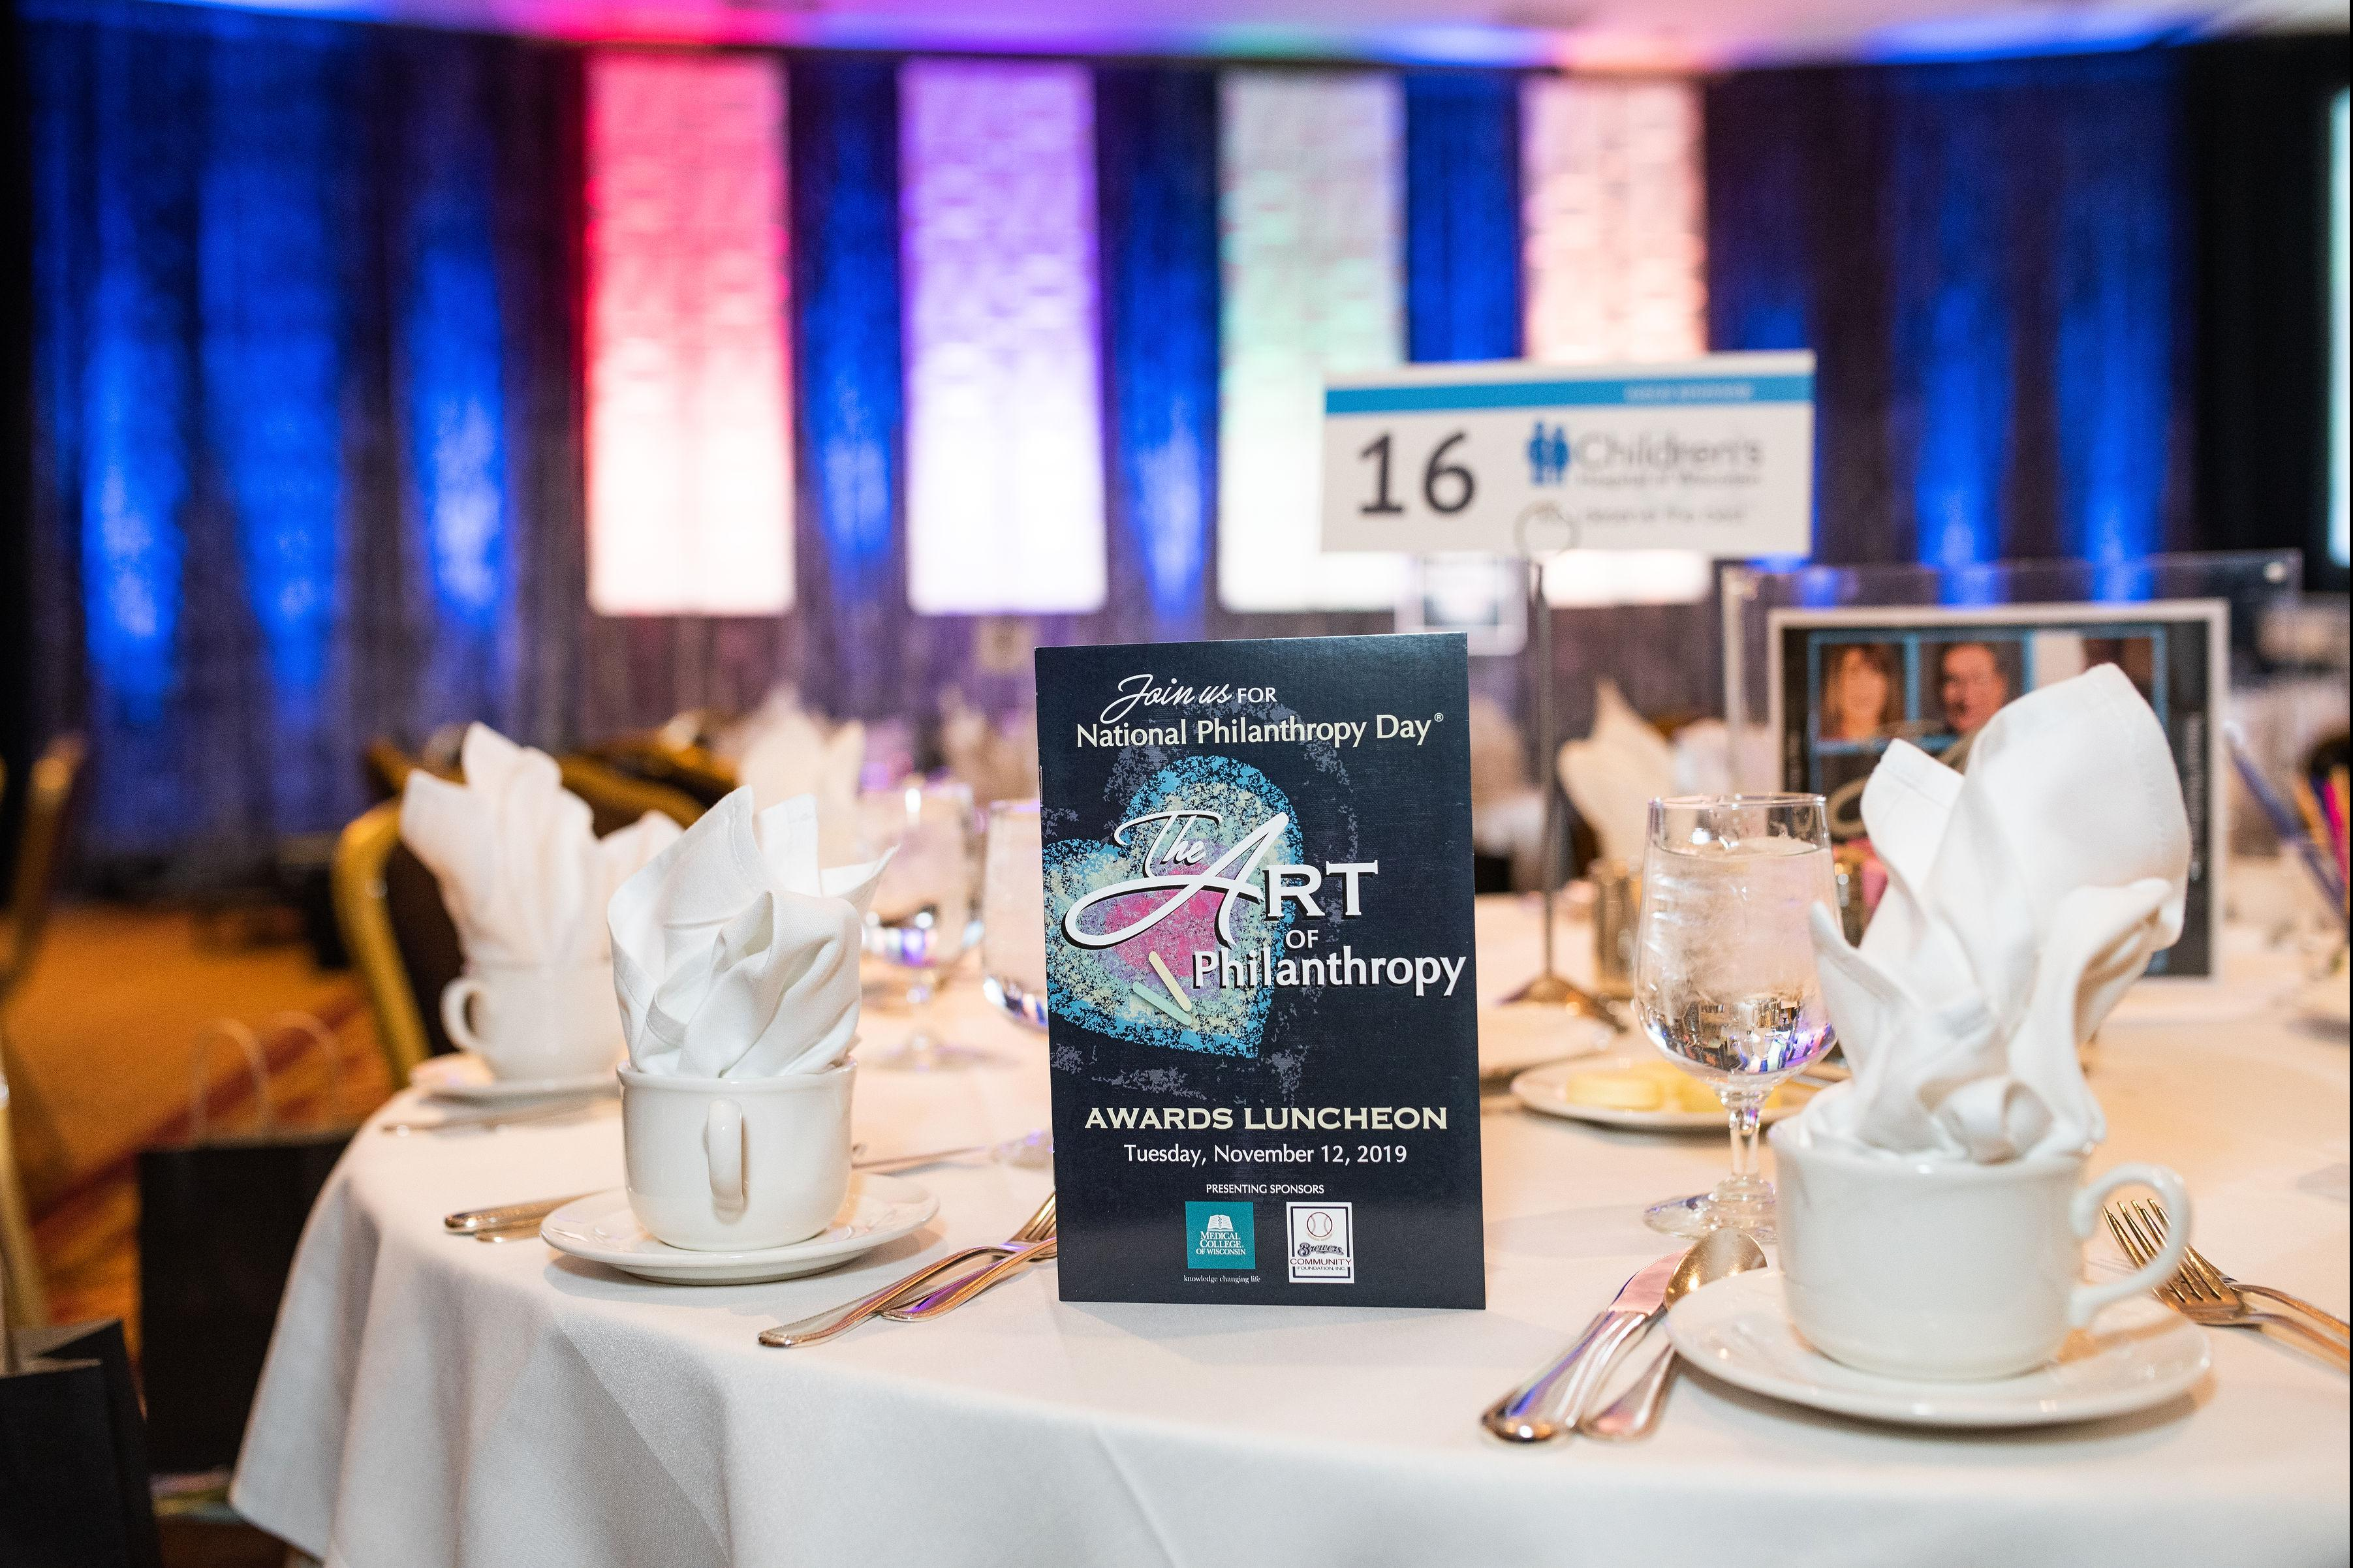 2019 National Philanthropy Day program and table setting